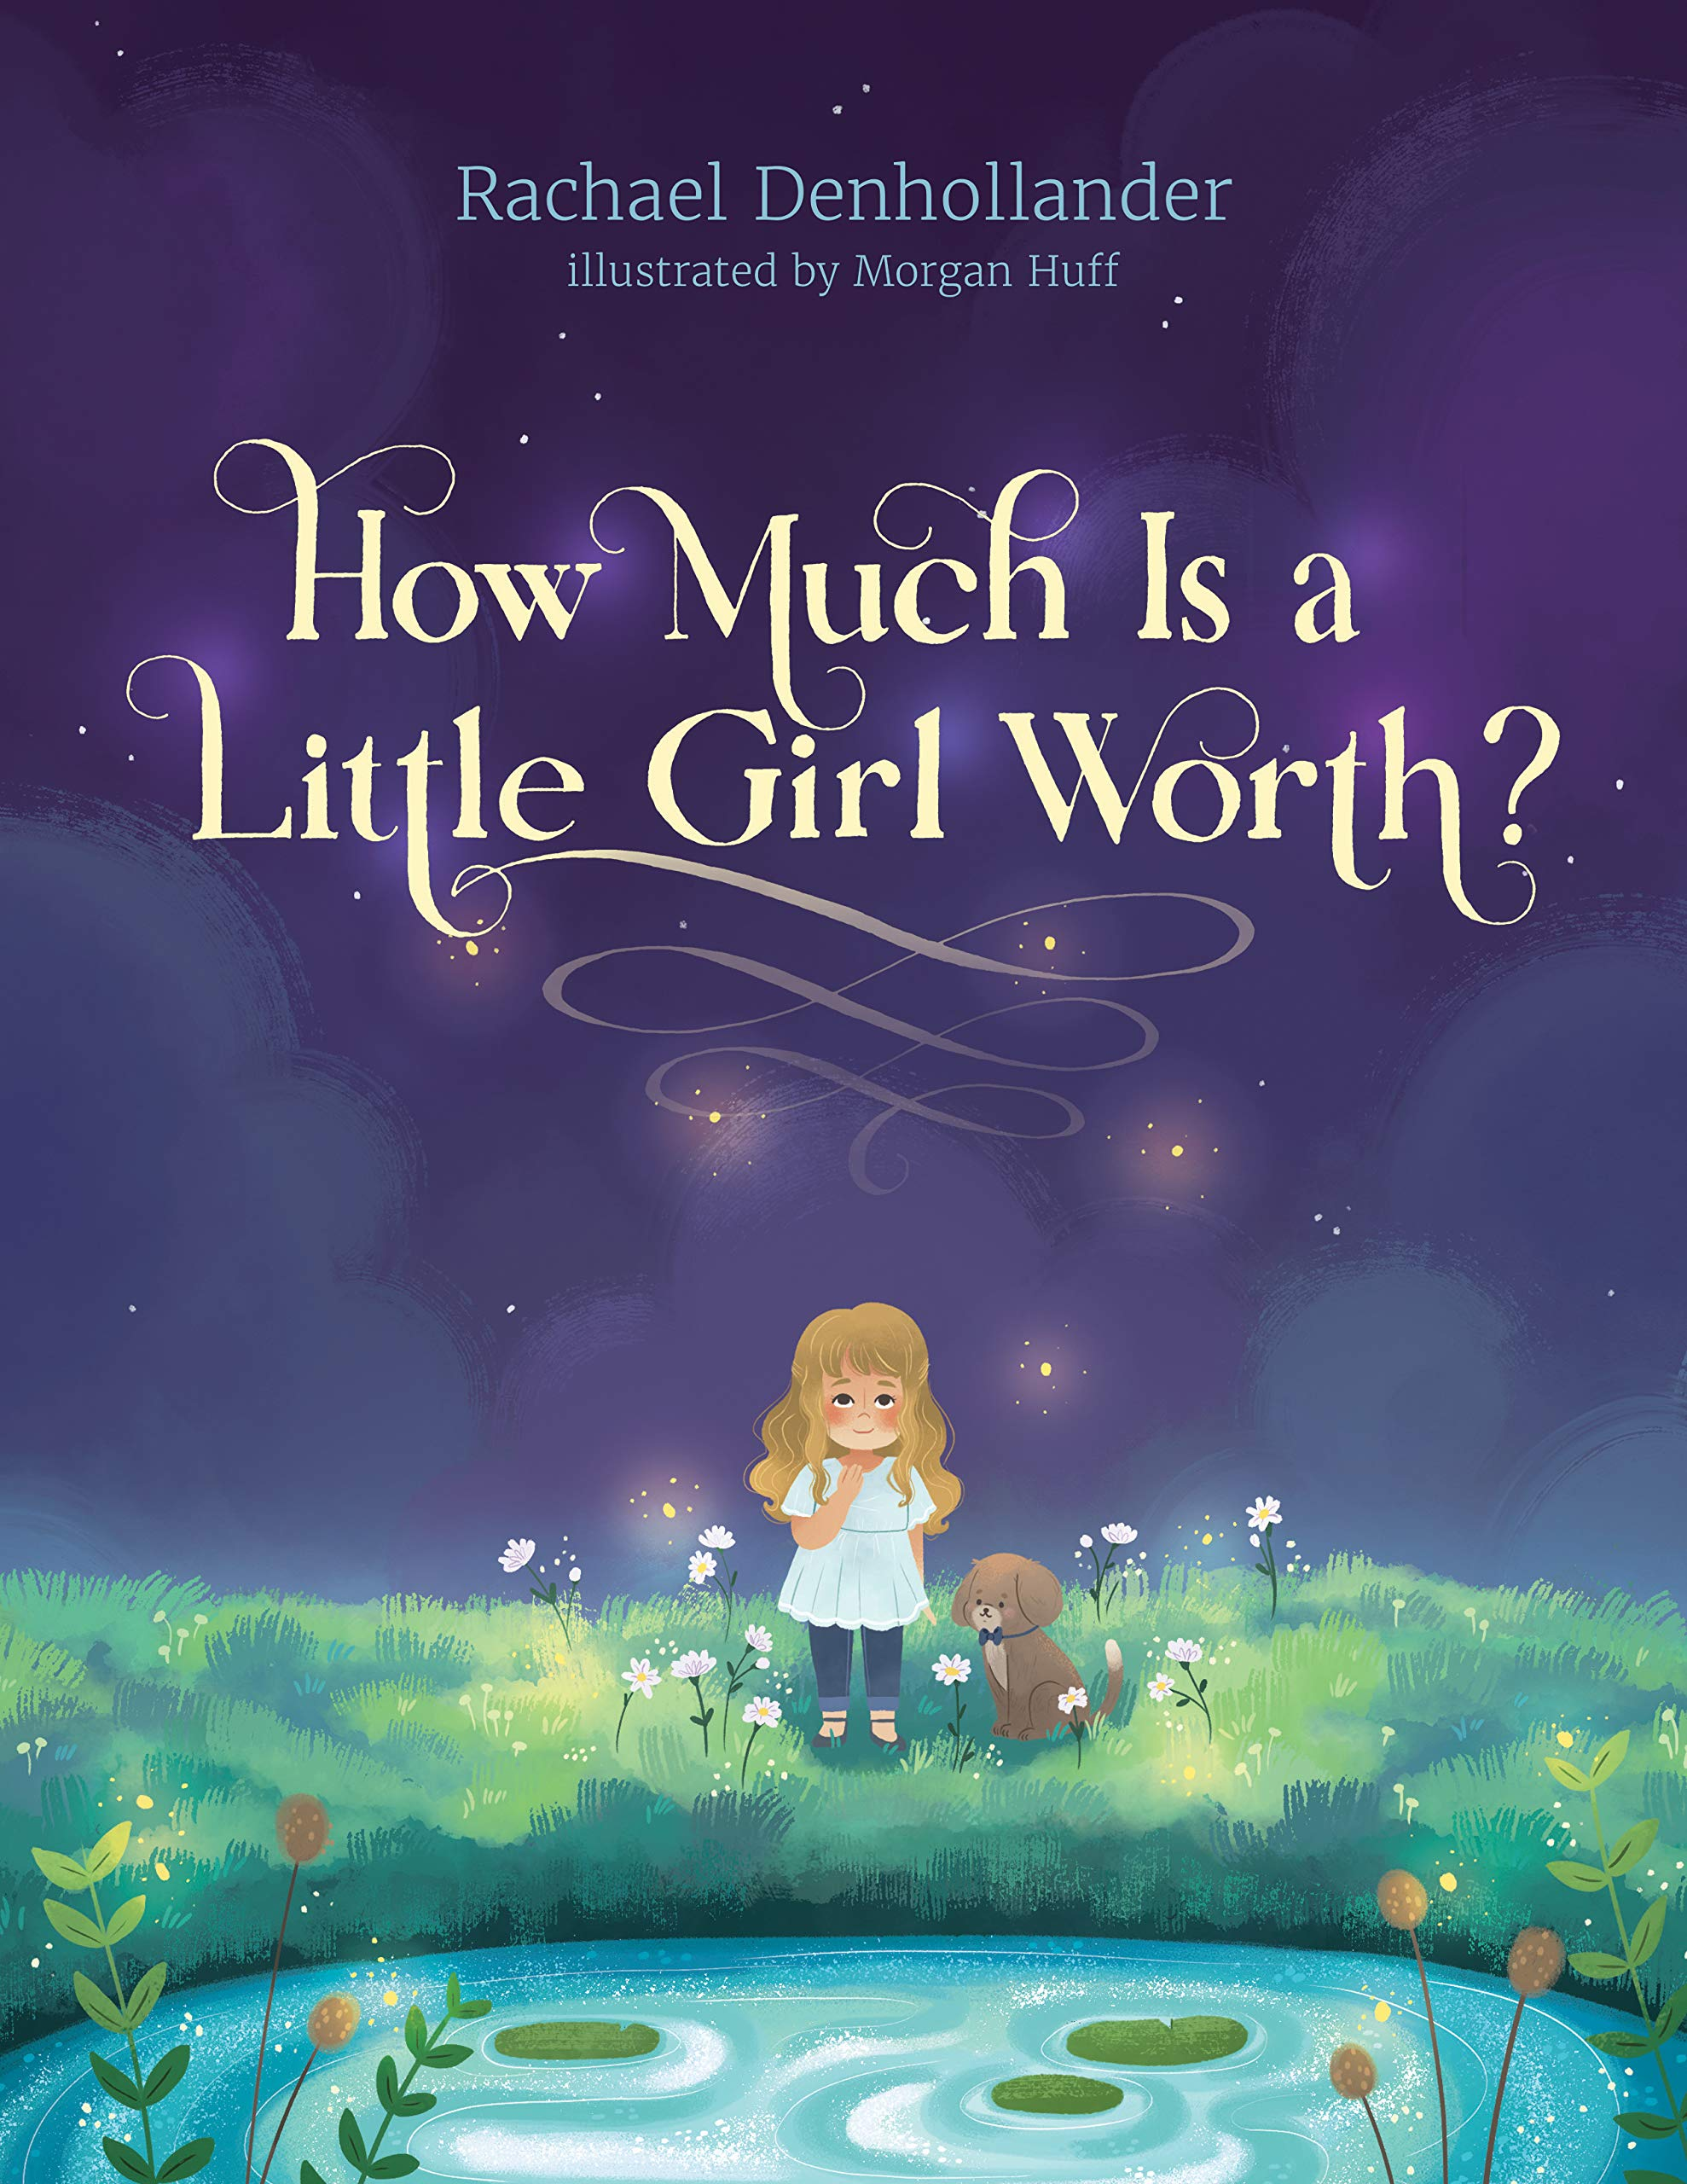 How Much Is a Little Girl Worth? by Rachael Denhollander